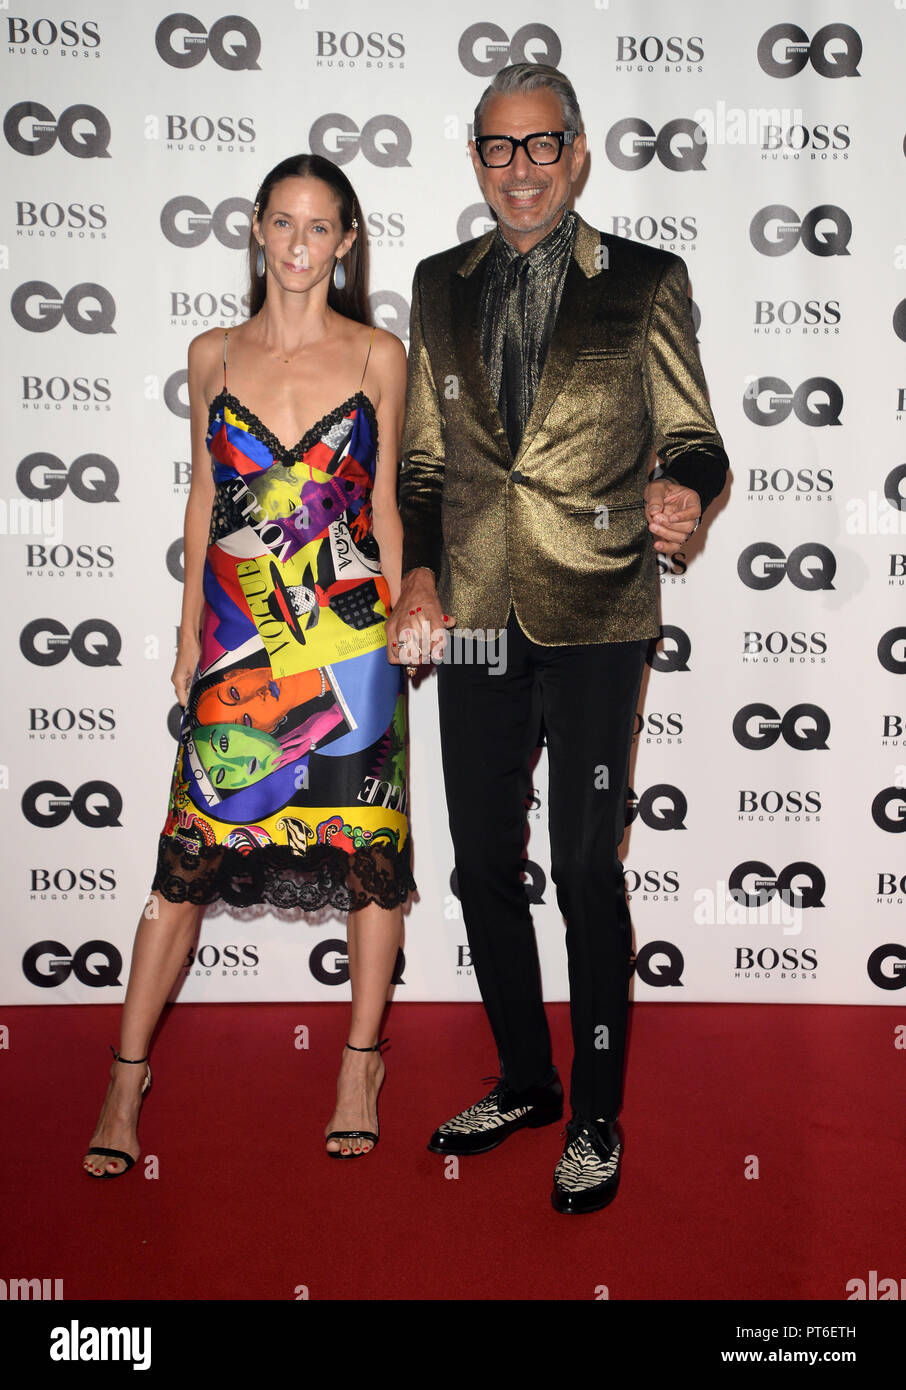 GQ Men Of The Year Awards at The Tate Modern  Featuring: Jeff Goldblum Where: London, United Kingdom When: 05 Sep 2018 Credit: Tony Oudot/WENN - Stock Image